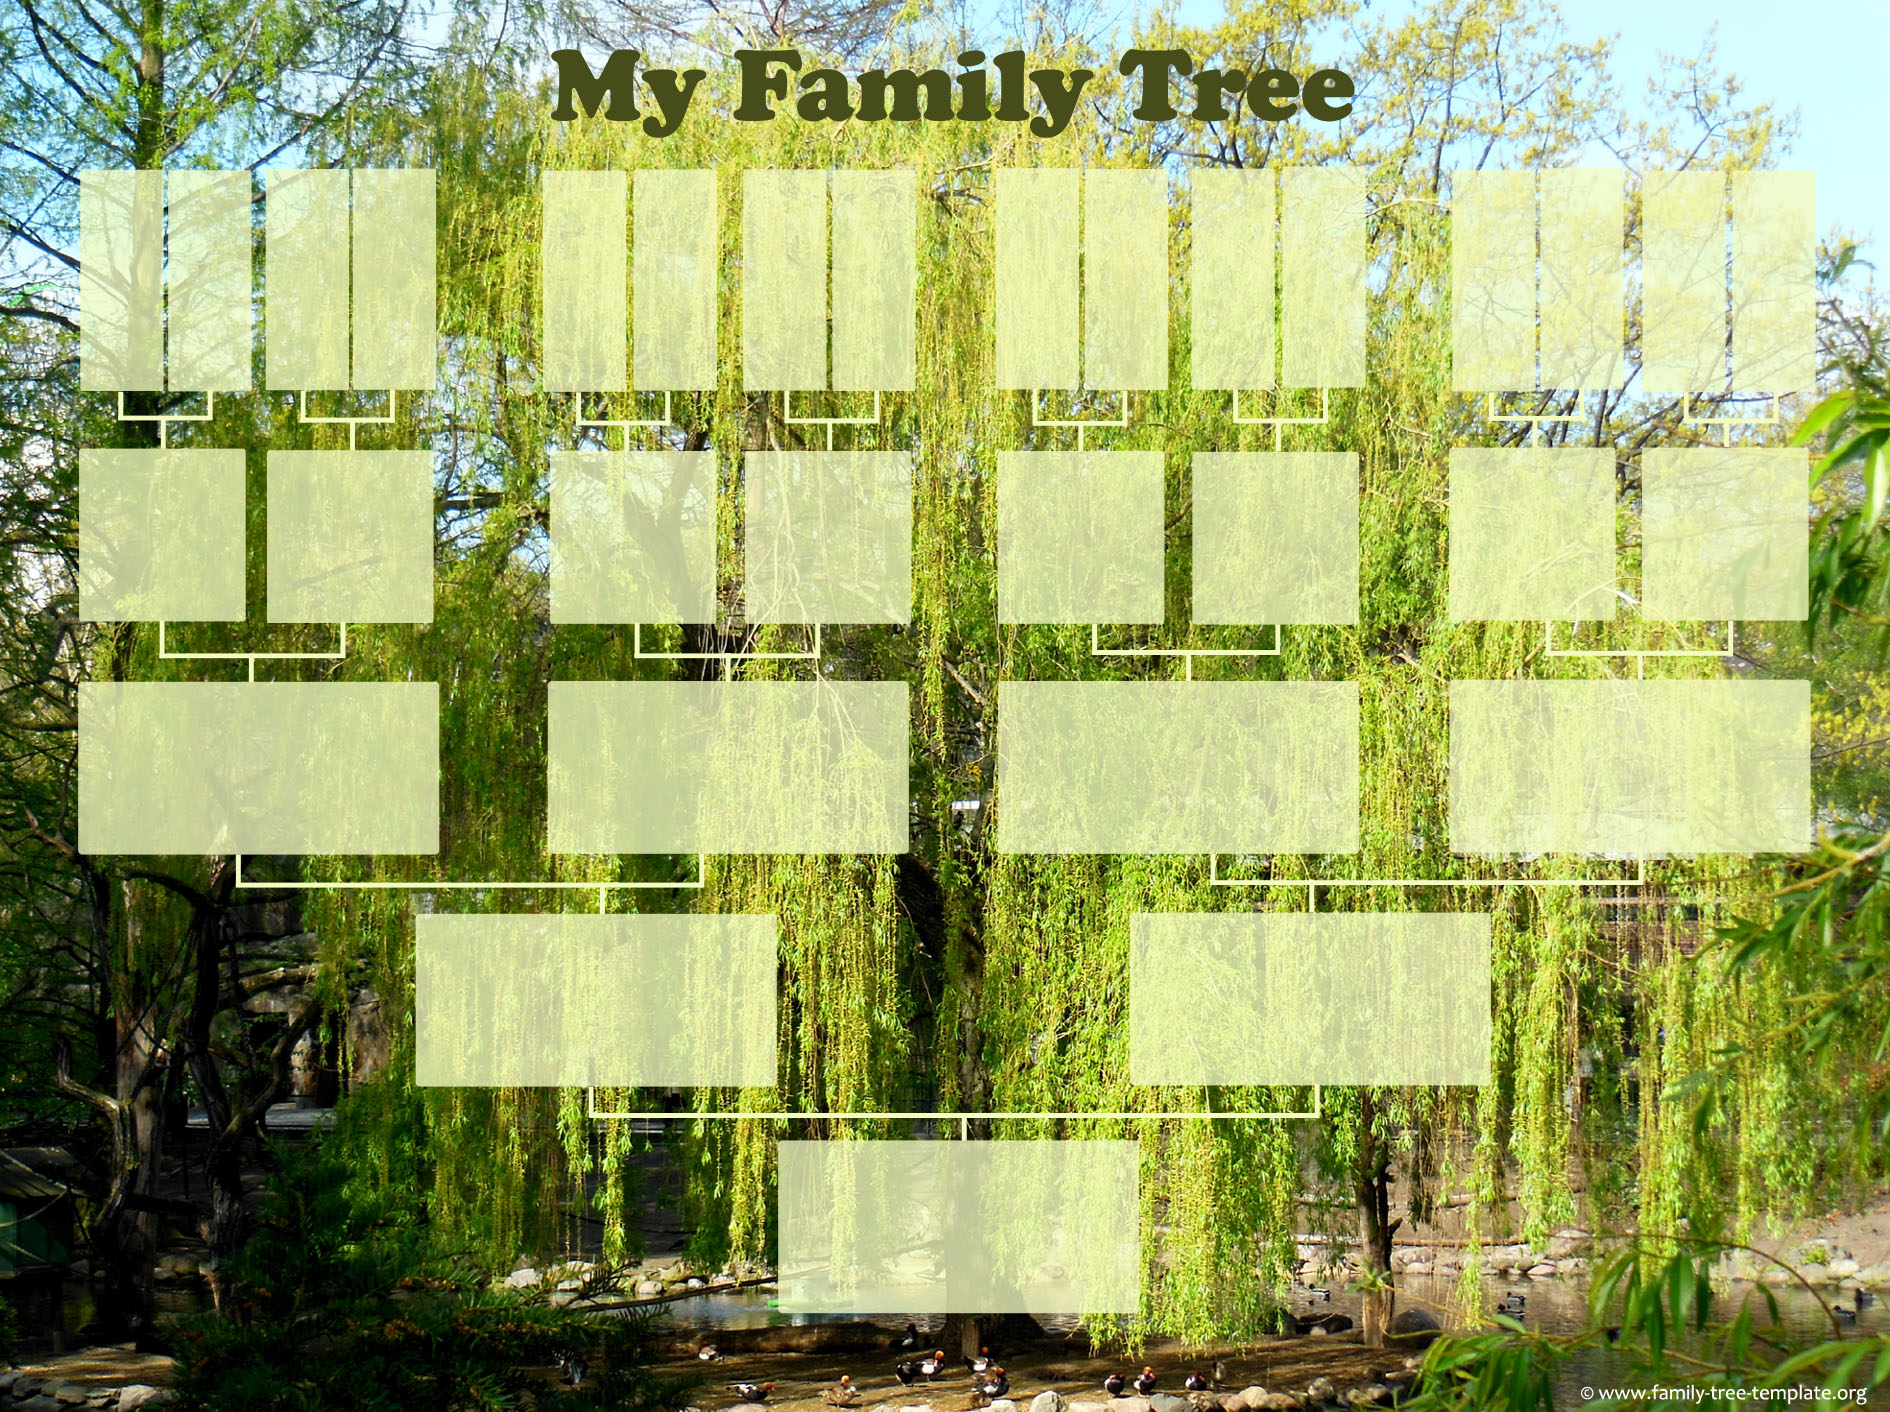 Family tree template form up to great great grandparents.